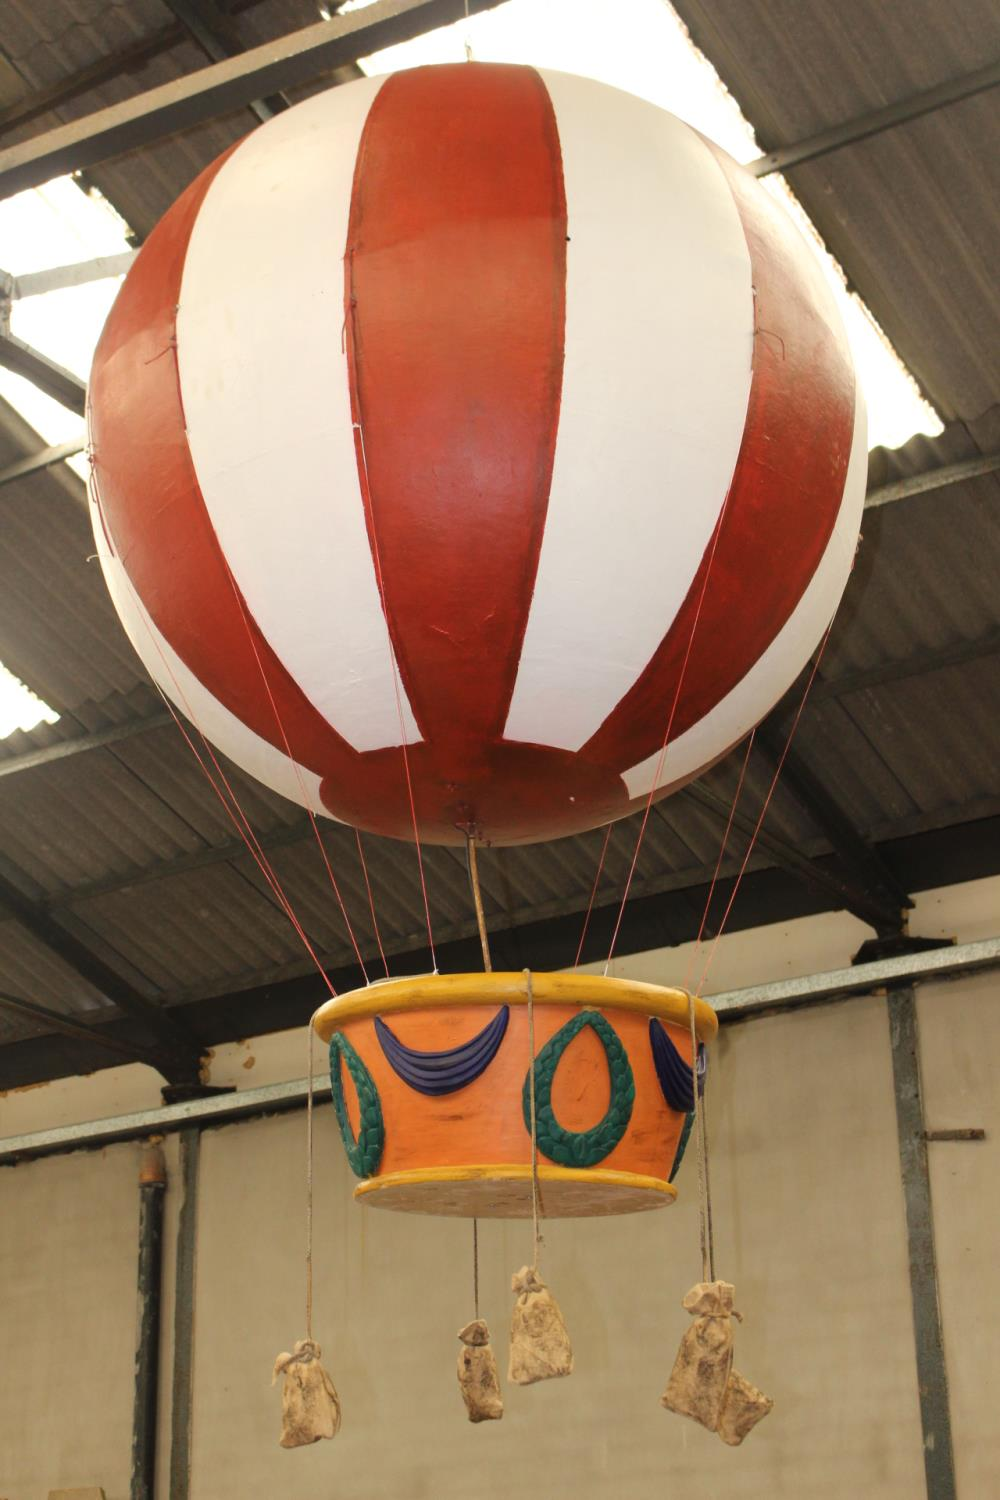 Resin model of Hot Air balloon - Image 2 of 3